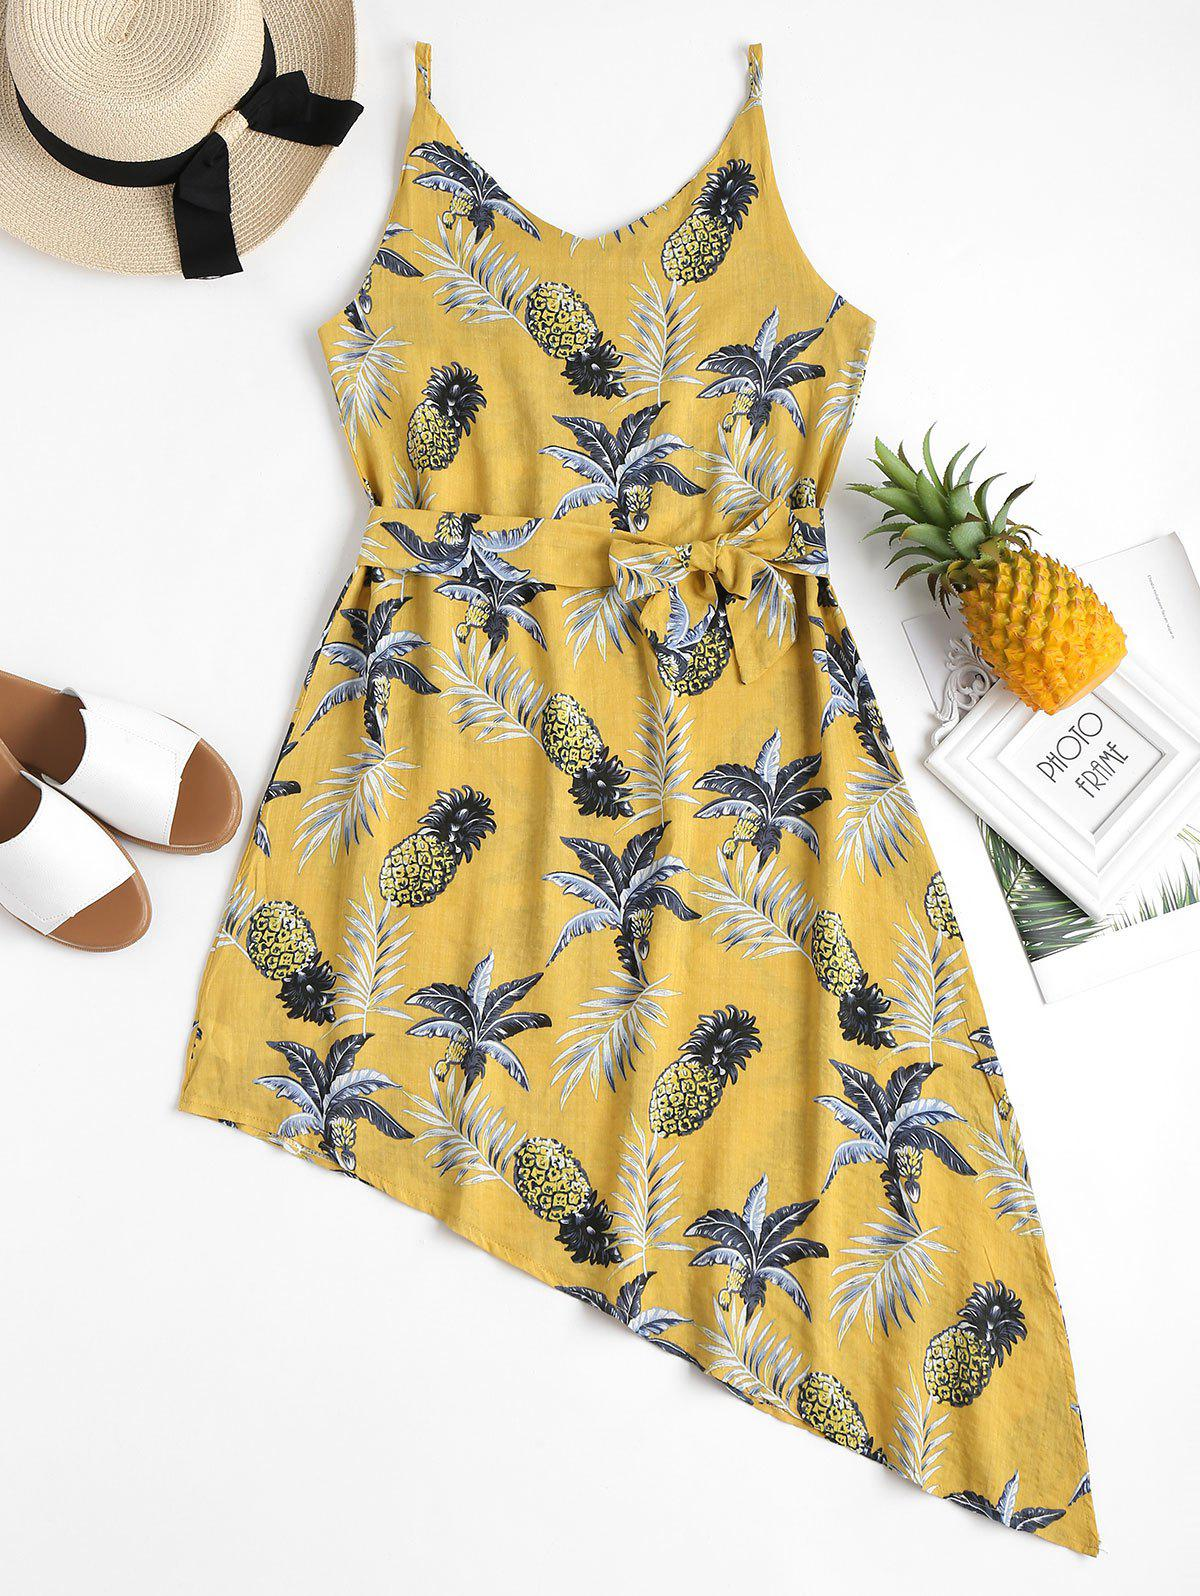 Pineapple Palm Asymmetrical Summer Dress 265795404